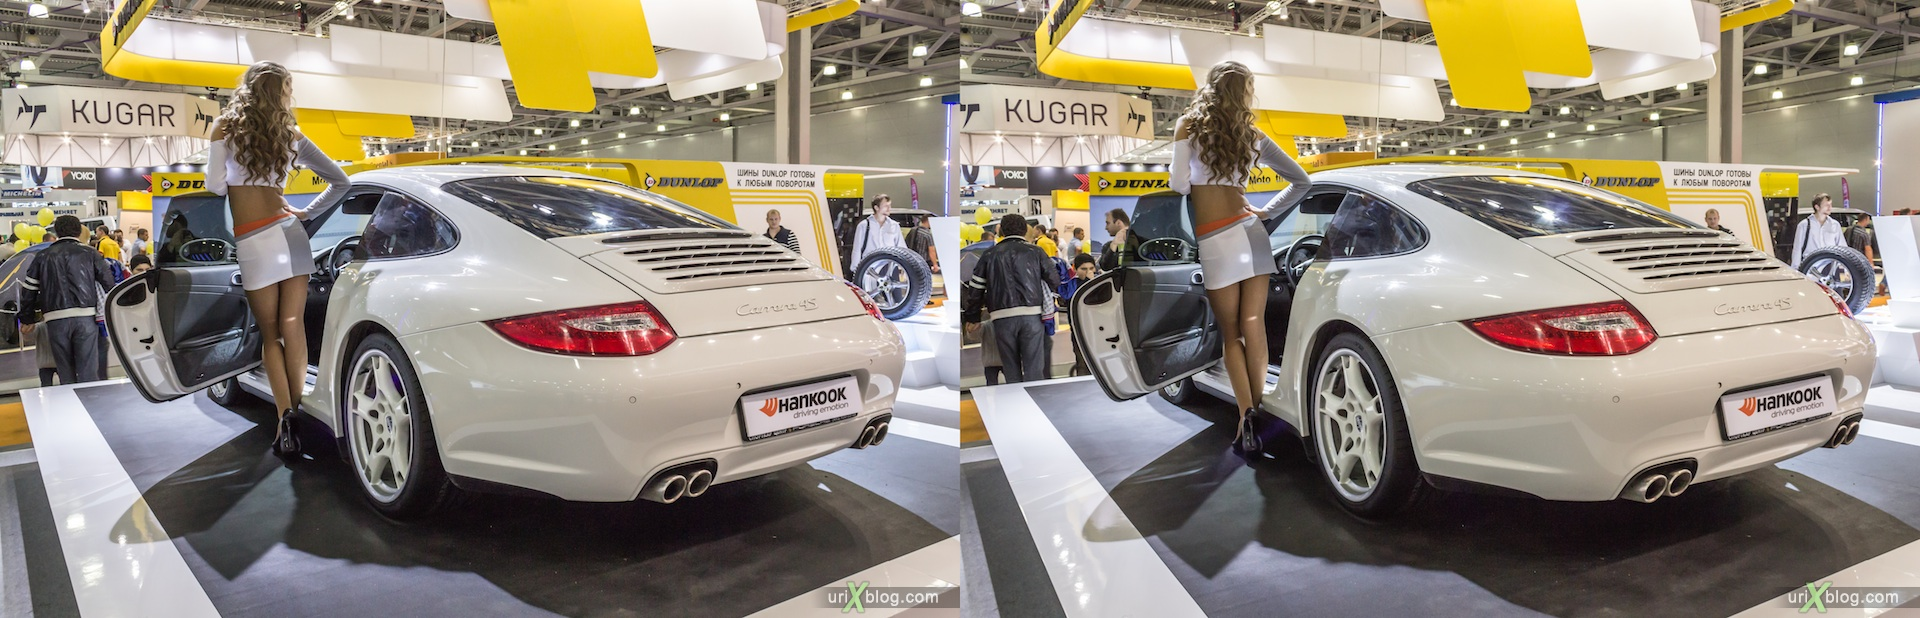 2012, Porsche Camera 4S, girl, model, Moscow International Automobile Salon, auto show, 3D, stereo pair, cross-eyed, crossview